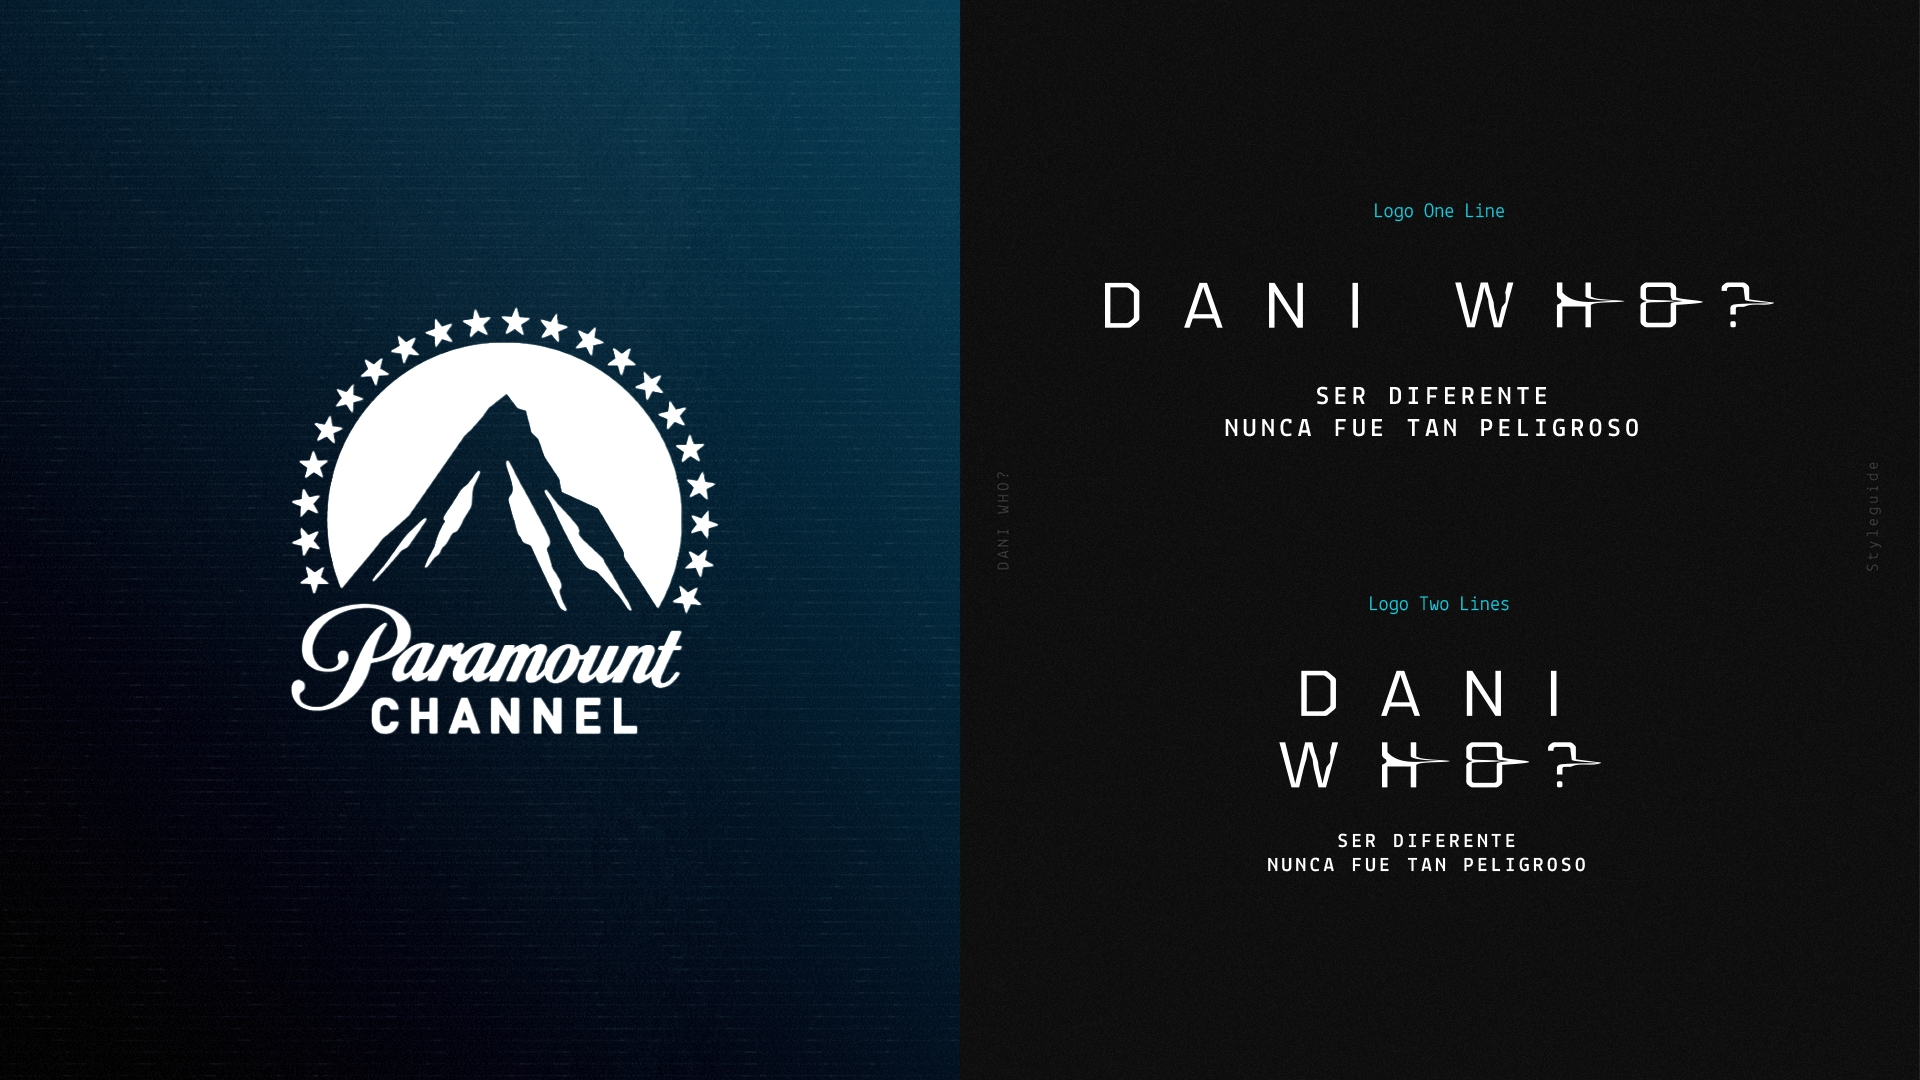 Dani Who? - Graphic Pack